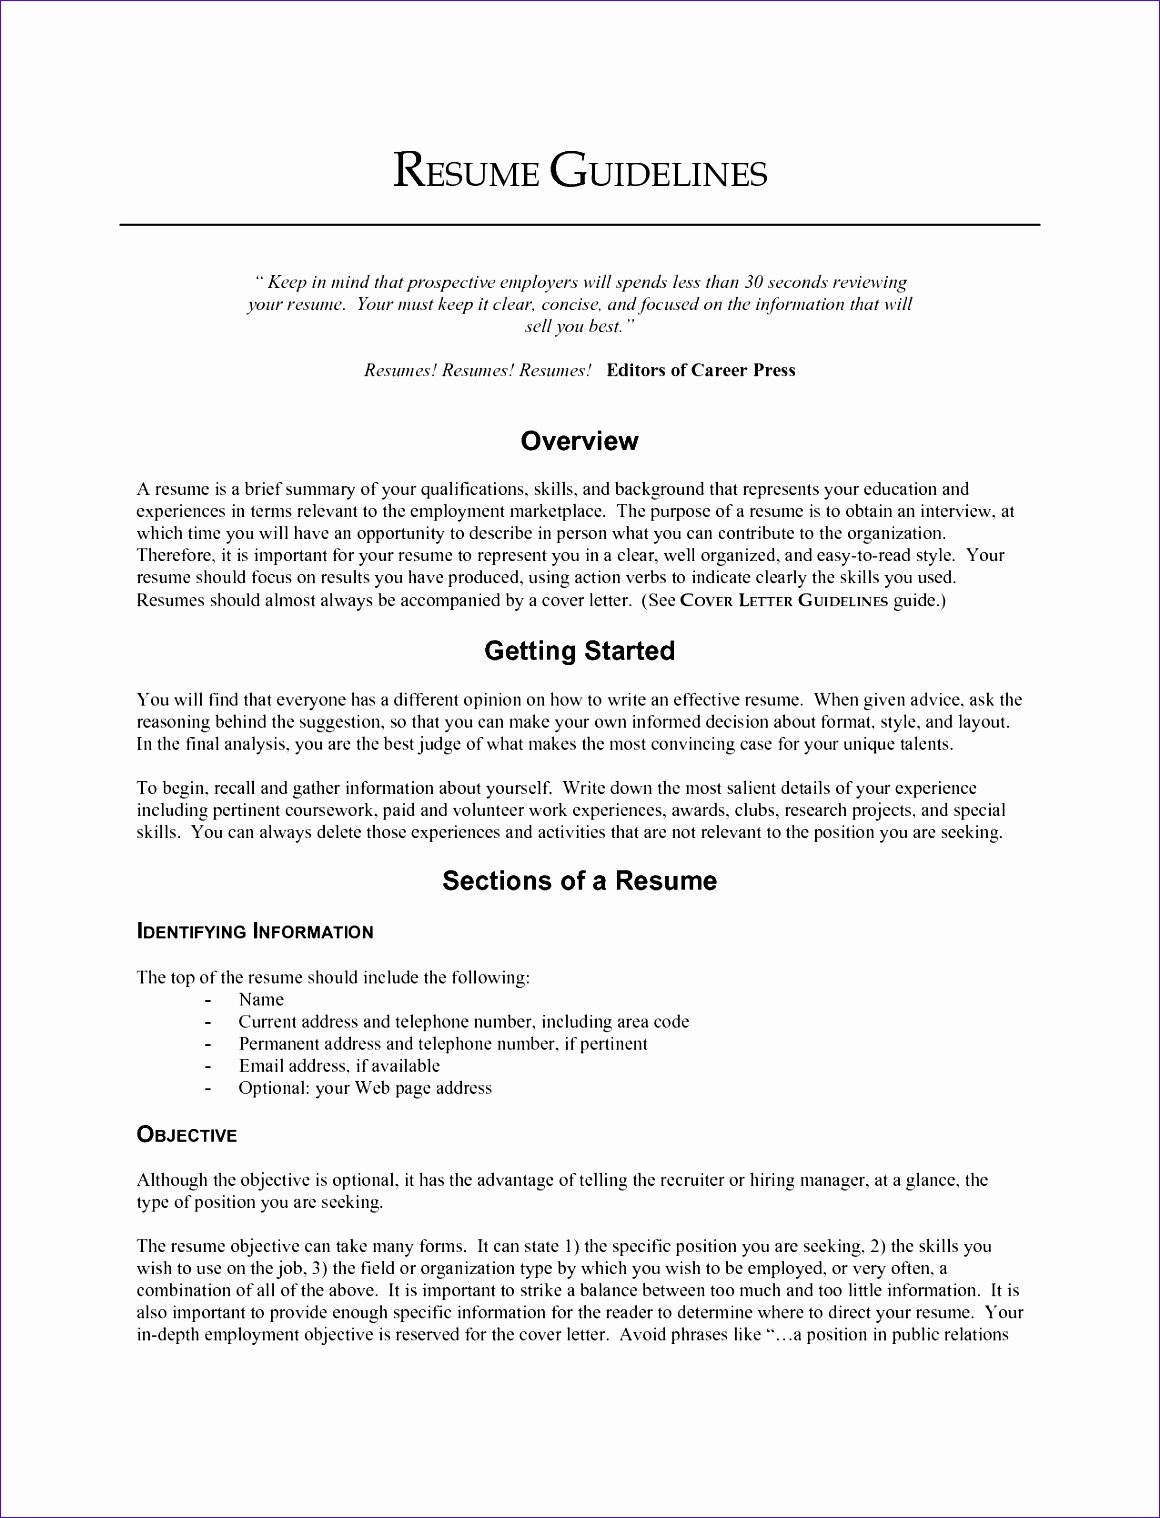 Examples Of Excellent Resumes Lovely 8 Excellent Cover Letter Templates Exceltemplates